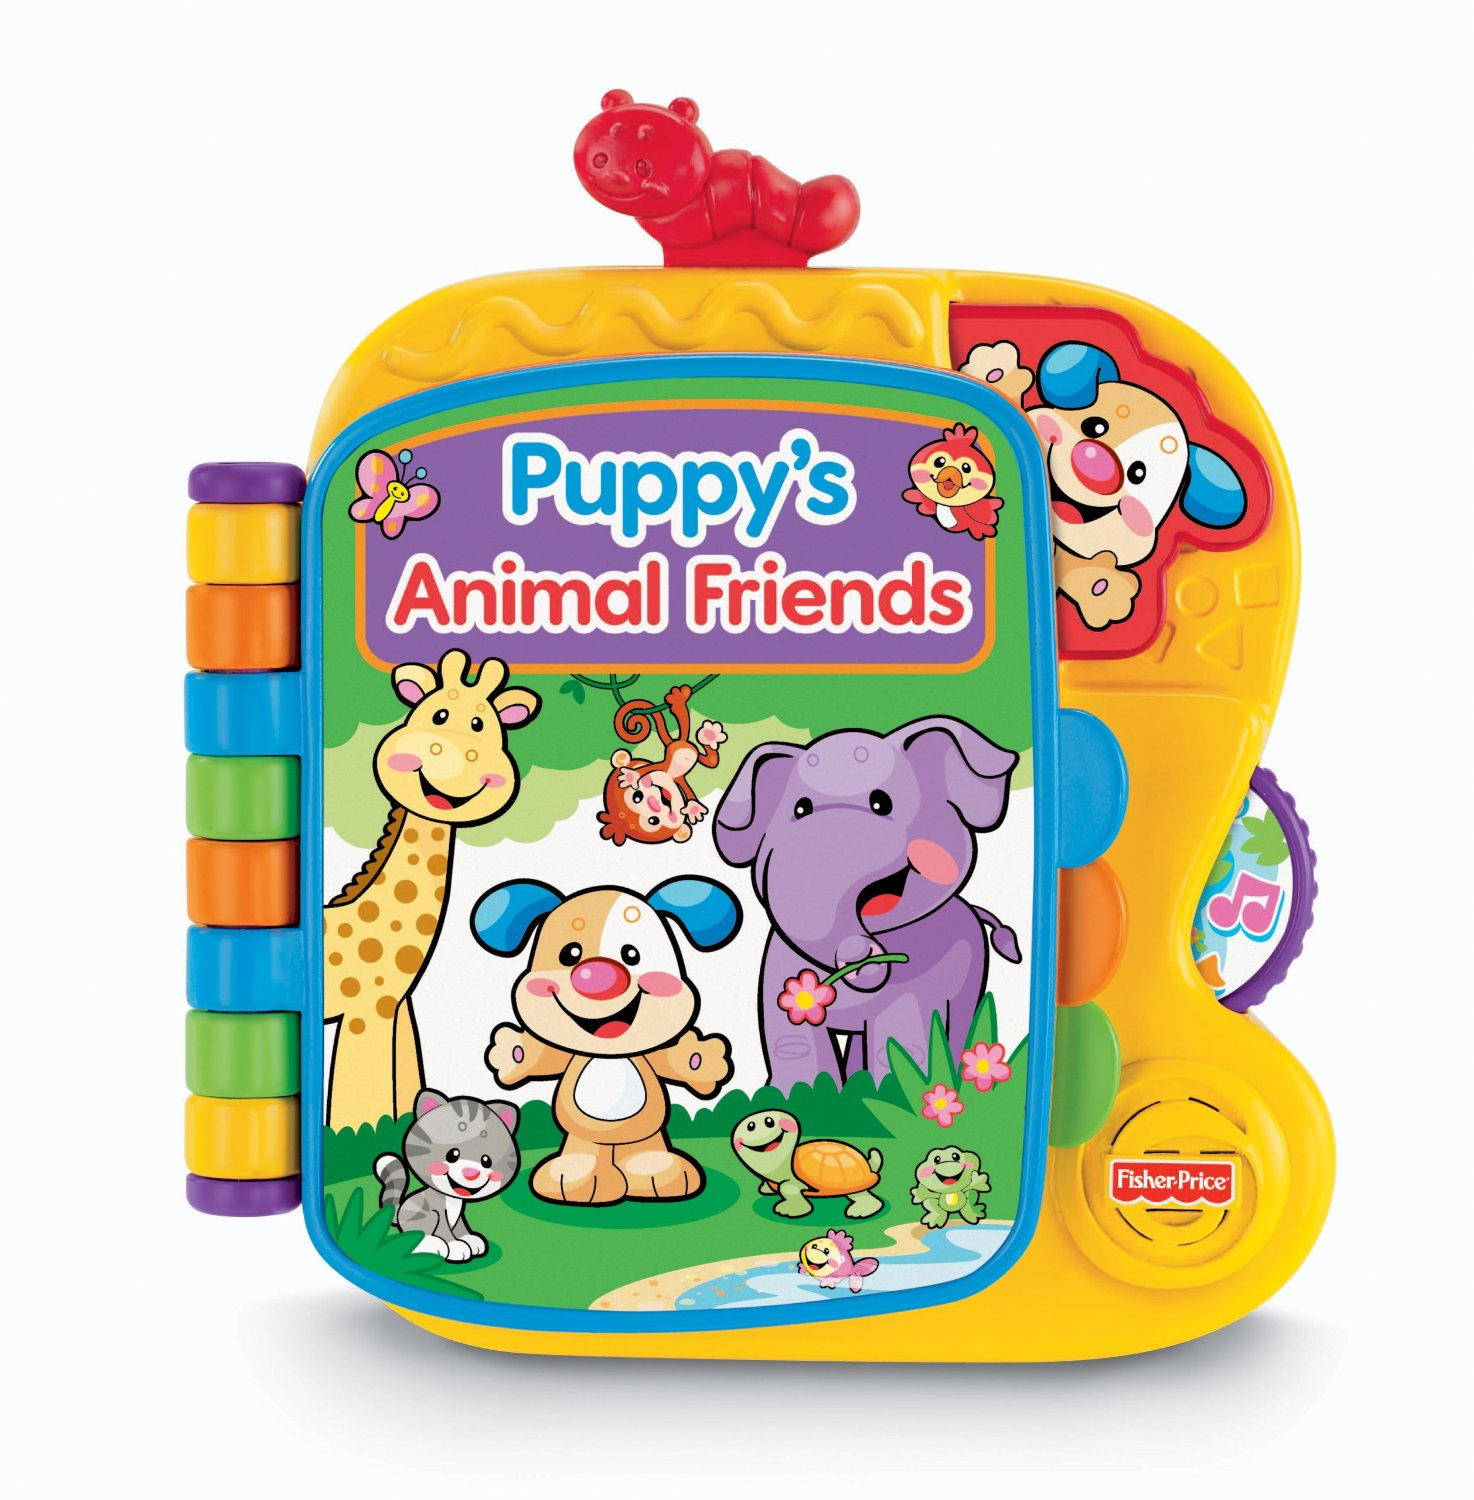 Puppy's Animal Friends Book